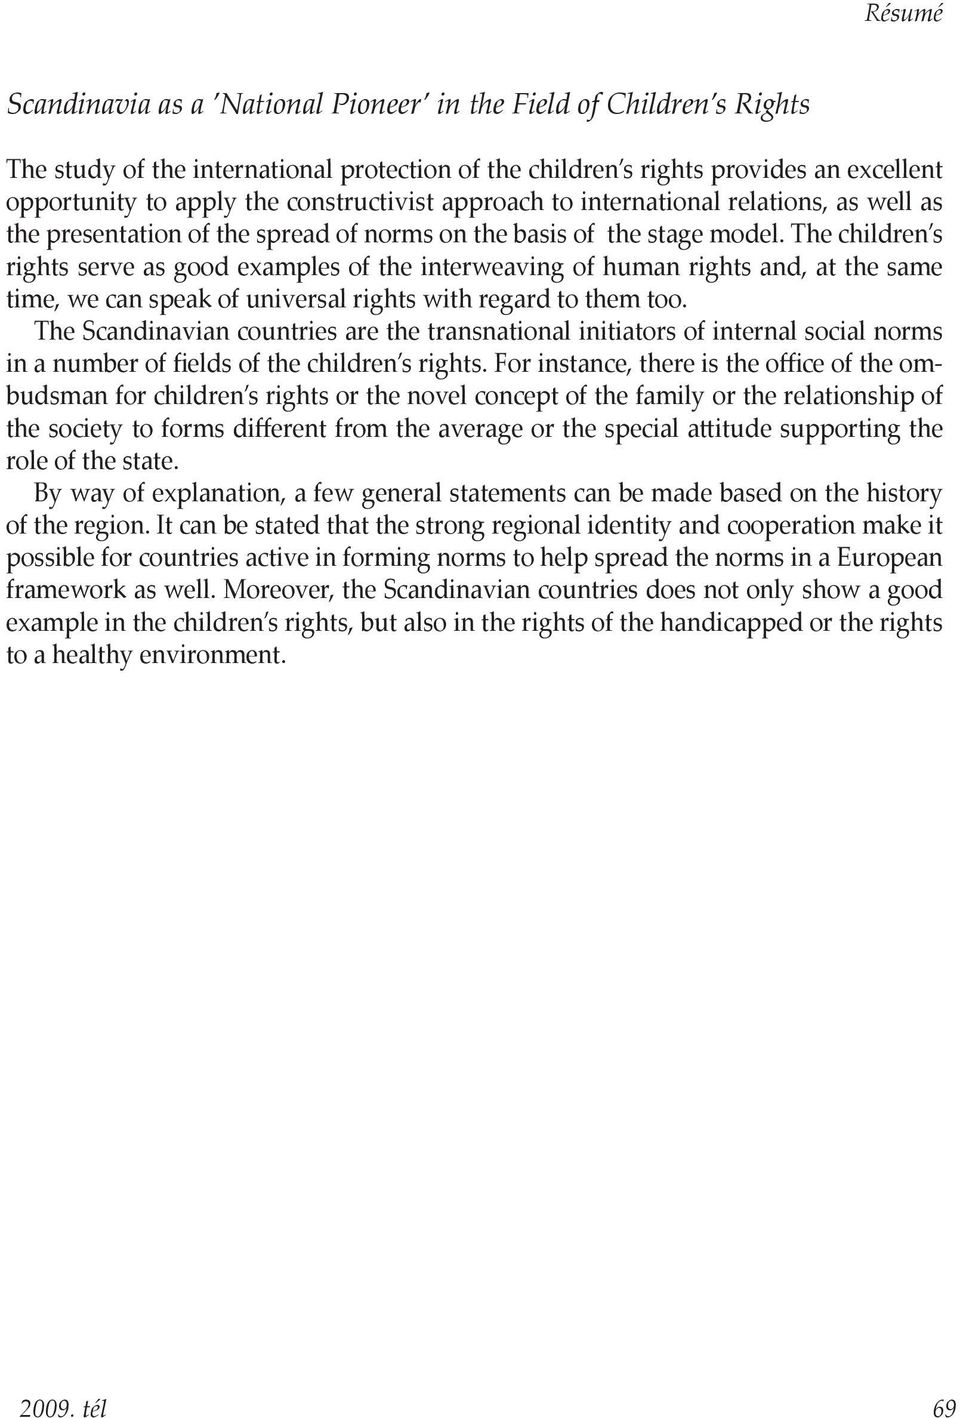 The children s rights serve as good examples of the interweaving of human rights and, at the same time, we can speak of universal rights with regard to them too.